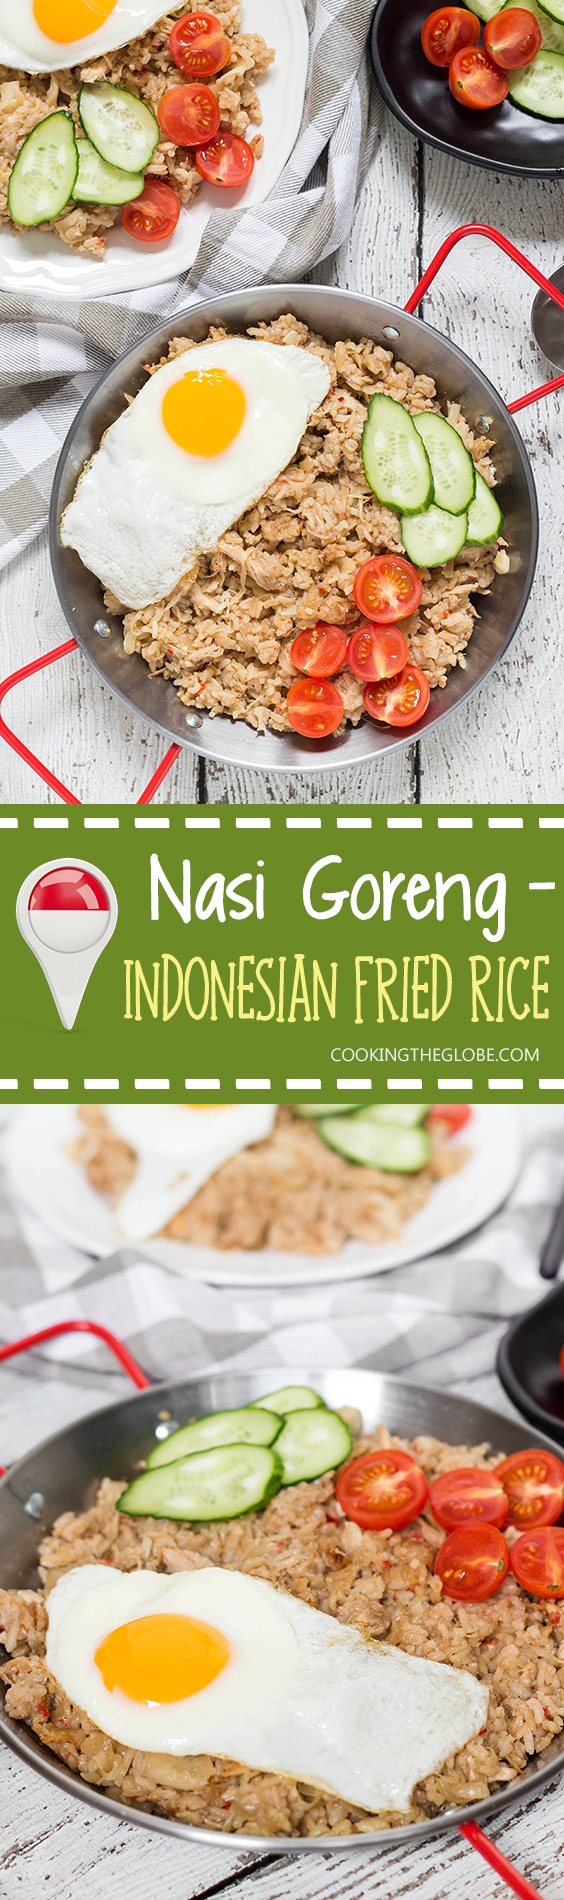 Indonesian Fried Rice (Nasi Goreng) is one of the most popular Indonesian dishes. It features chicken, tons of veggies, and is served with a fried egg on top! | cookingtheglobe.com